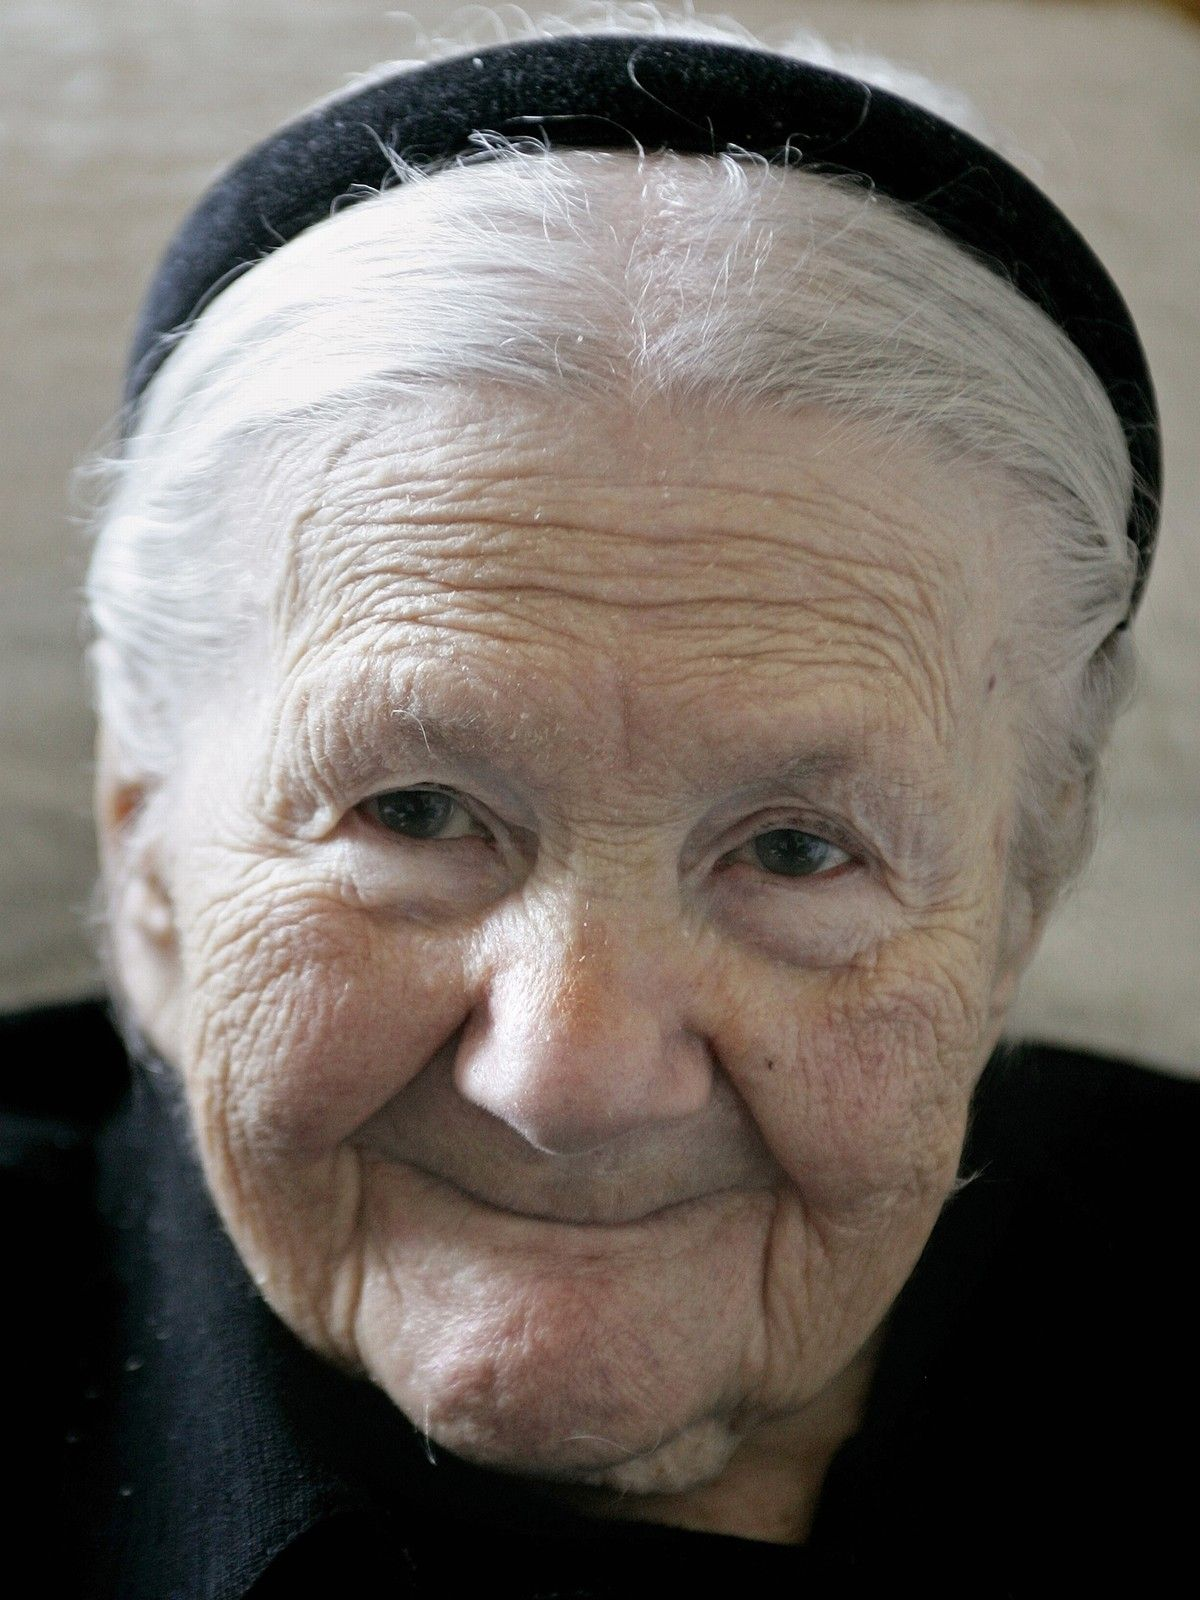 COURAGE: Irena Sendler 1910-2008 A 98 year-old Polish woman named Irena Sendler recently died. During WWII, Irena worked in the Warsaw Ghetto as a plumbing/sewer specialist. @Linda Greenhalgh Irena smuggled Jewish children out; infants in the bottom of the tool box she carried and older children in a burlap sack she carried in the back of her truck. She also had a dog in the back that she trained to bark when the Nazi soldiers let her in and out of the ghetto. The soldiers wanted nothing to…